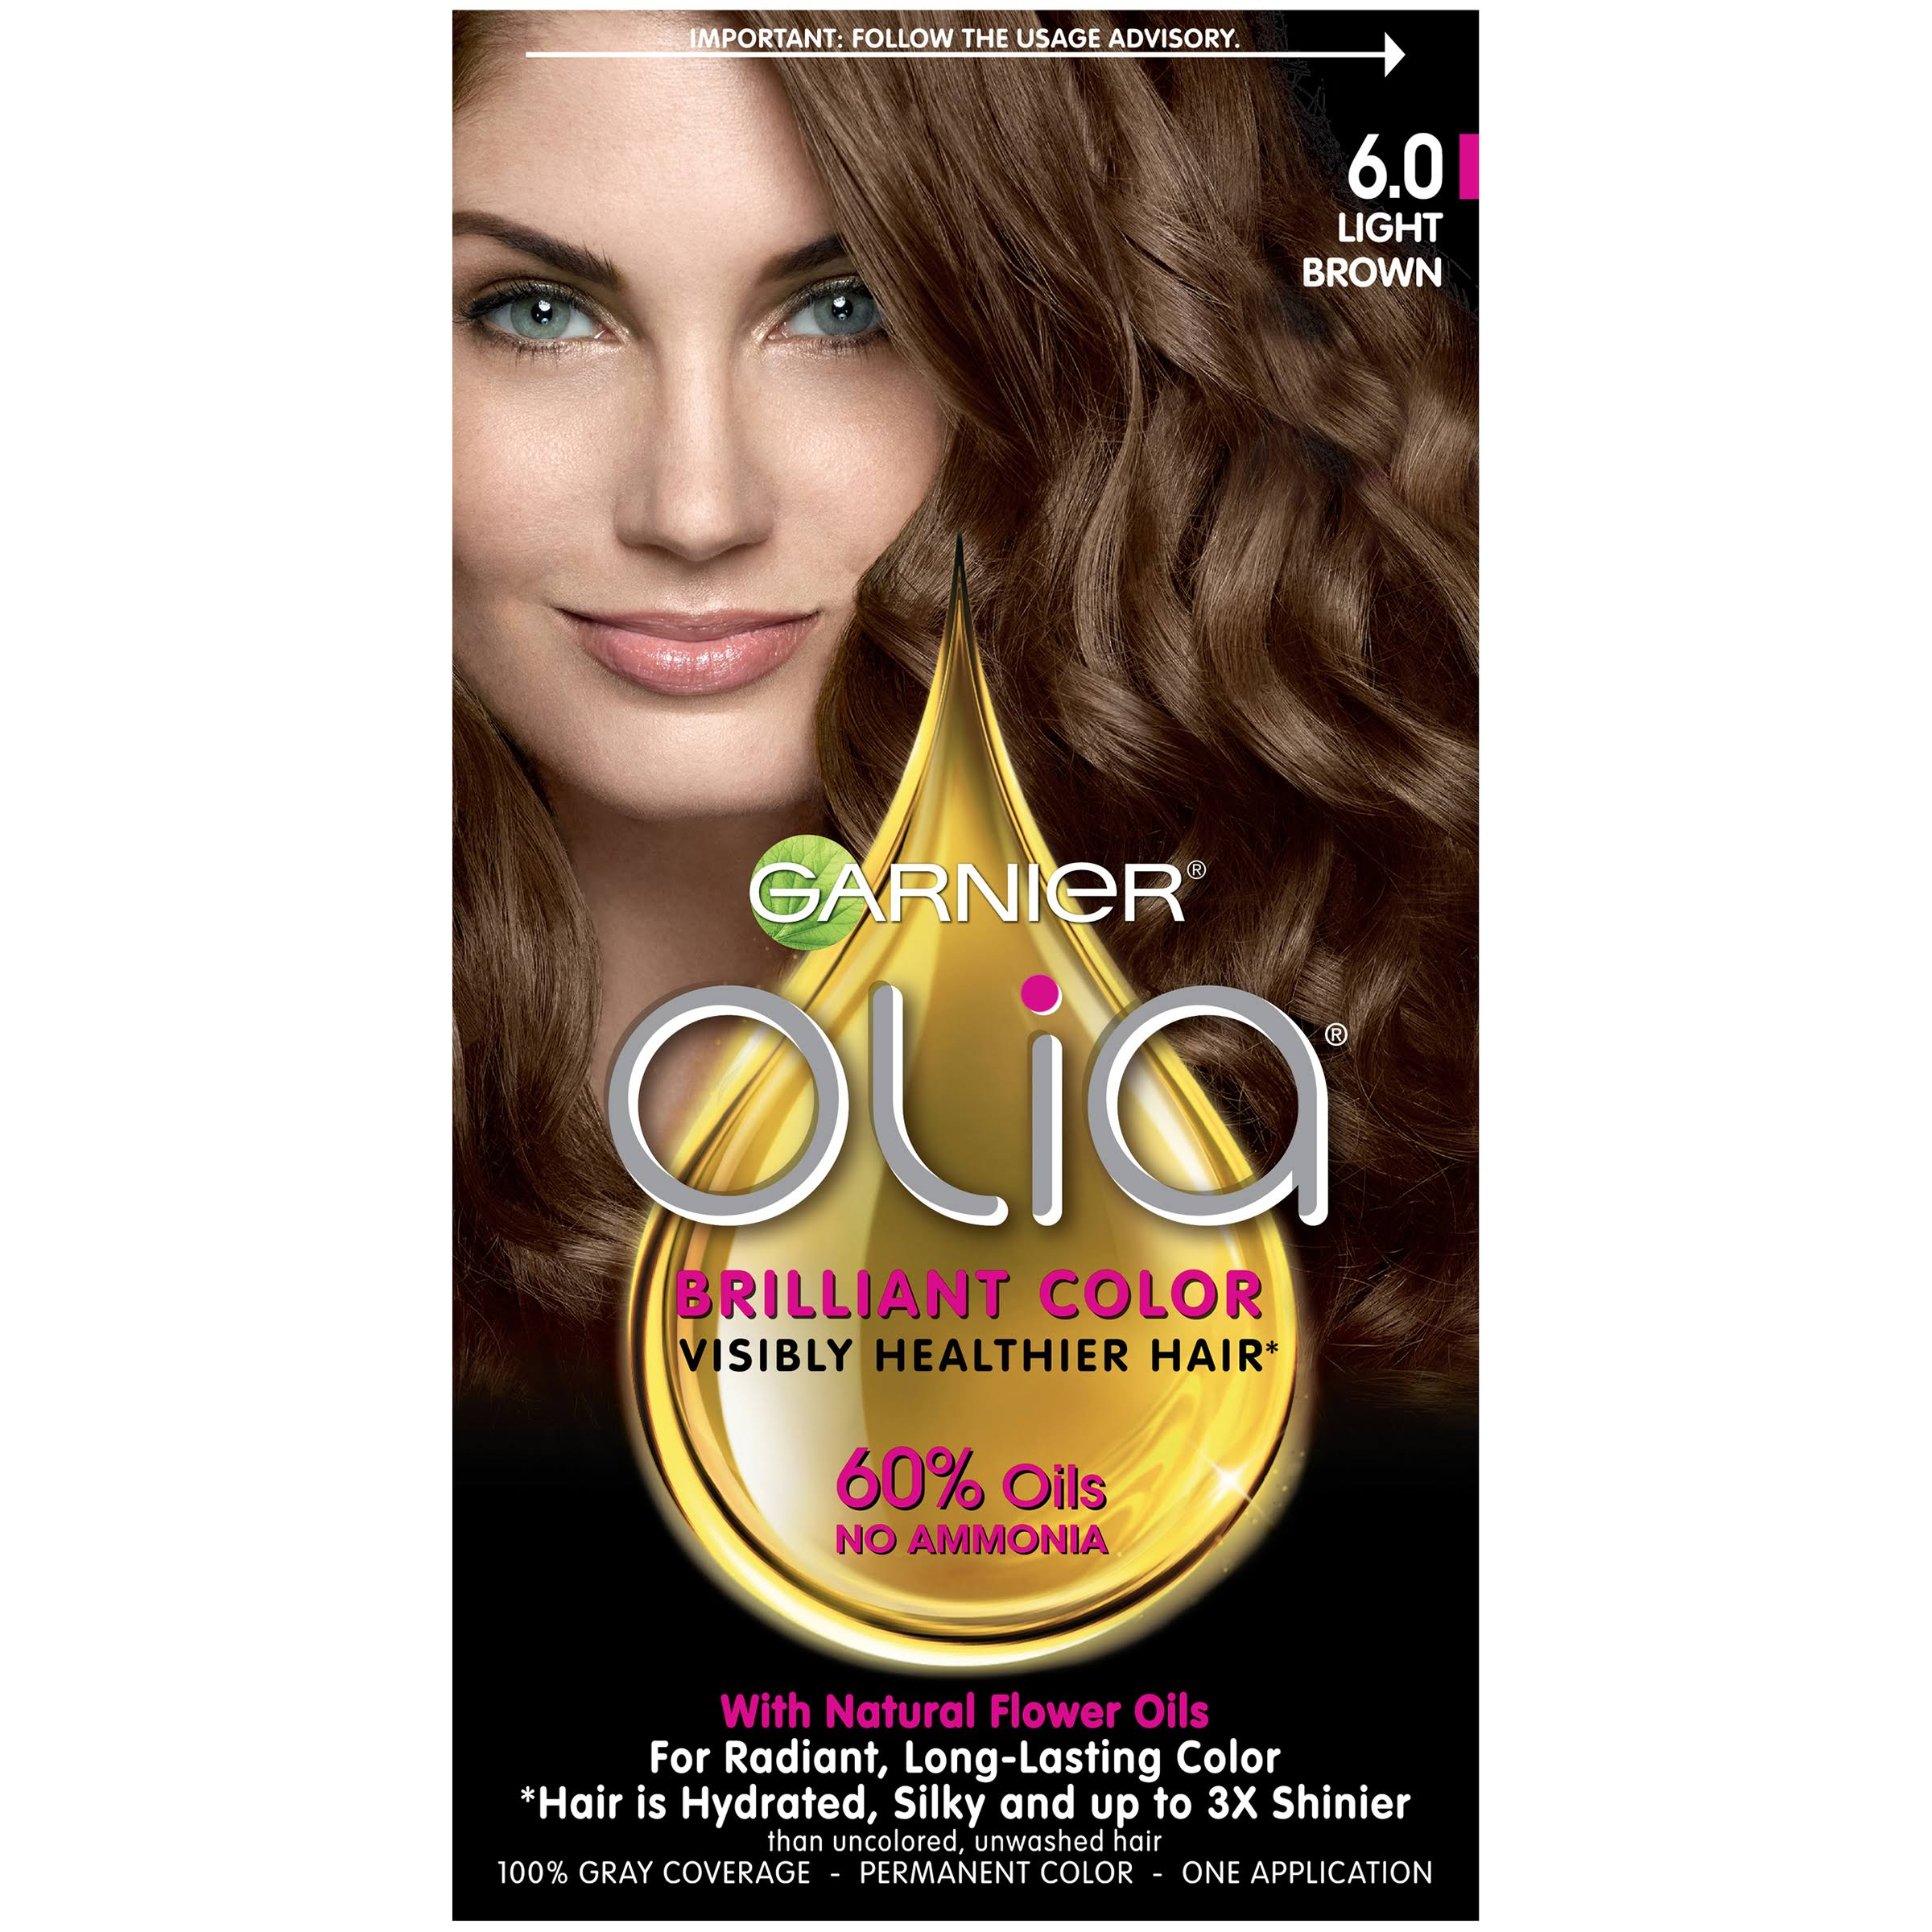 Garnier Olia Oil Powered Permanent Color - 6.0 Light Brown